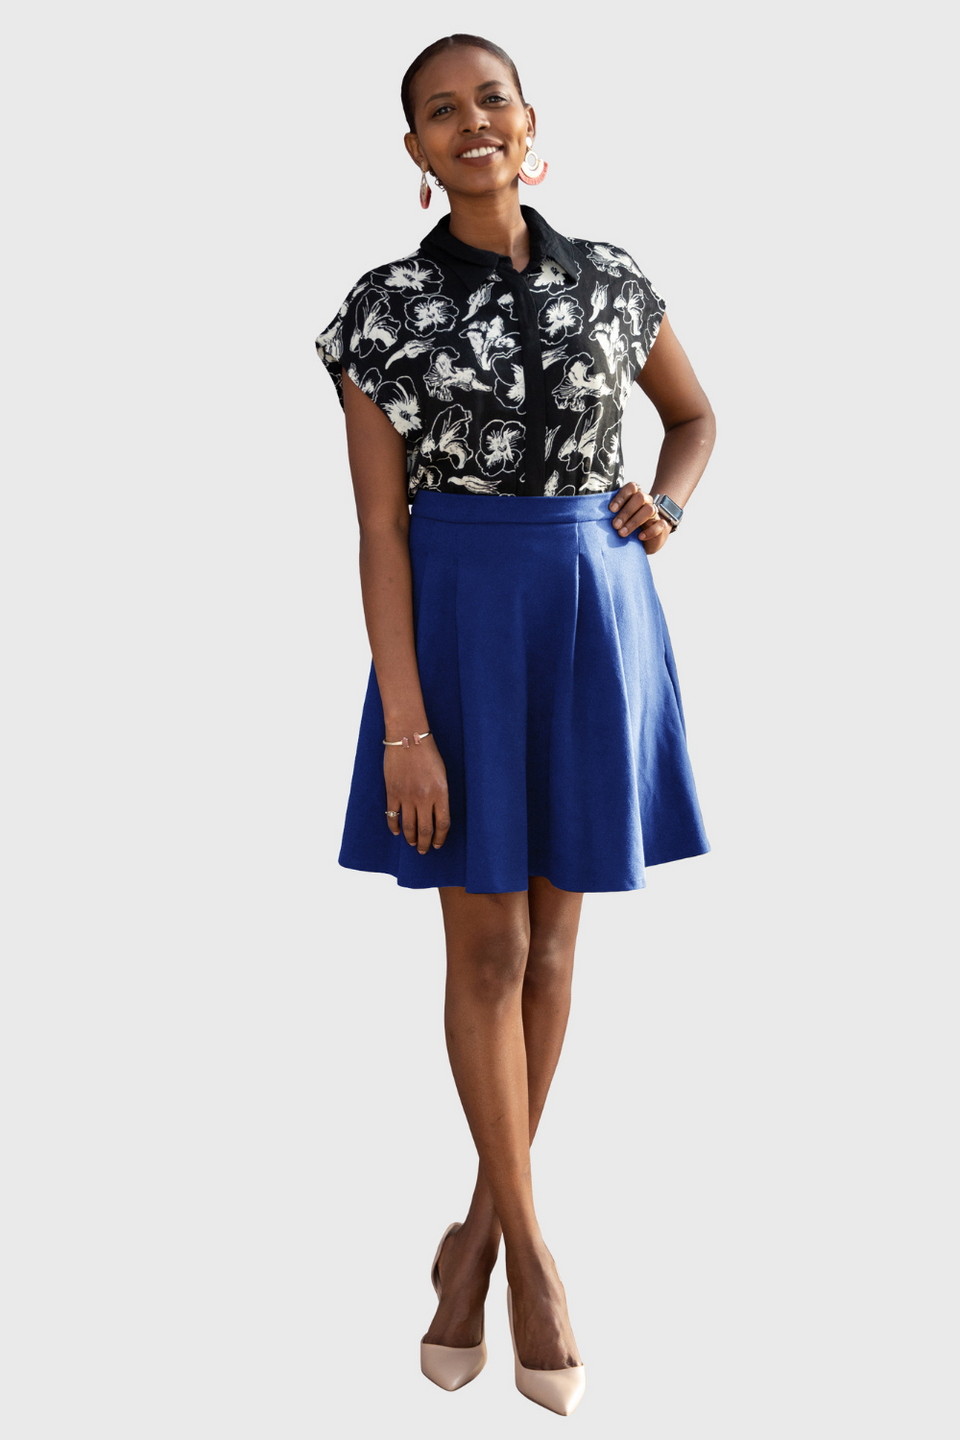 The Verena Skirt in Cherry Blossom